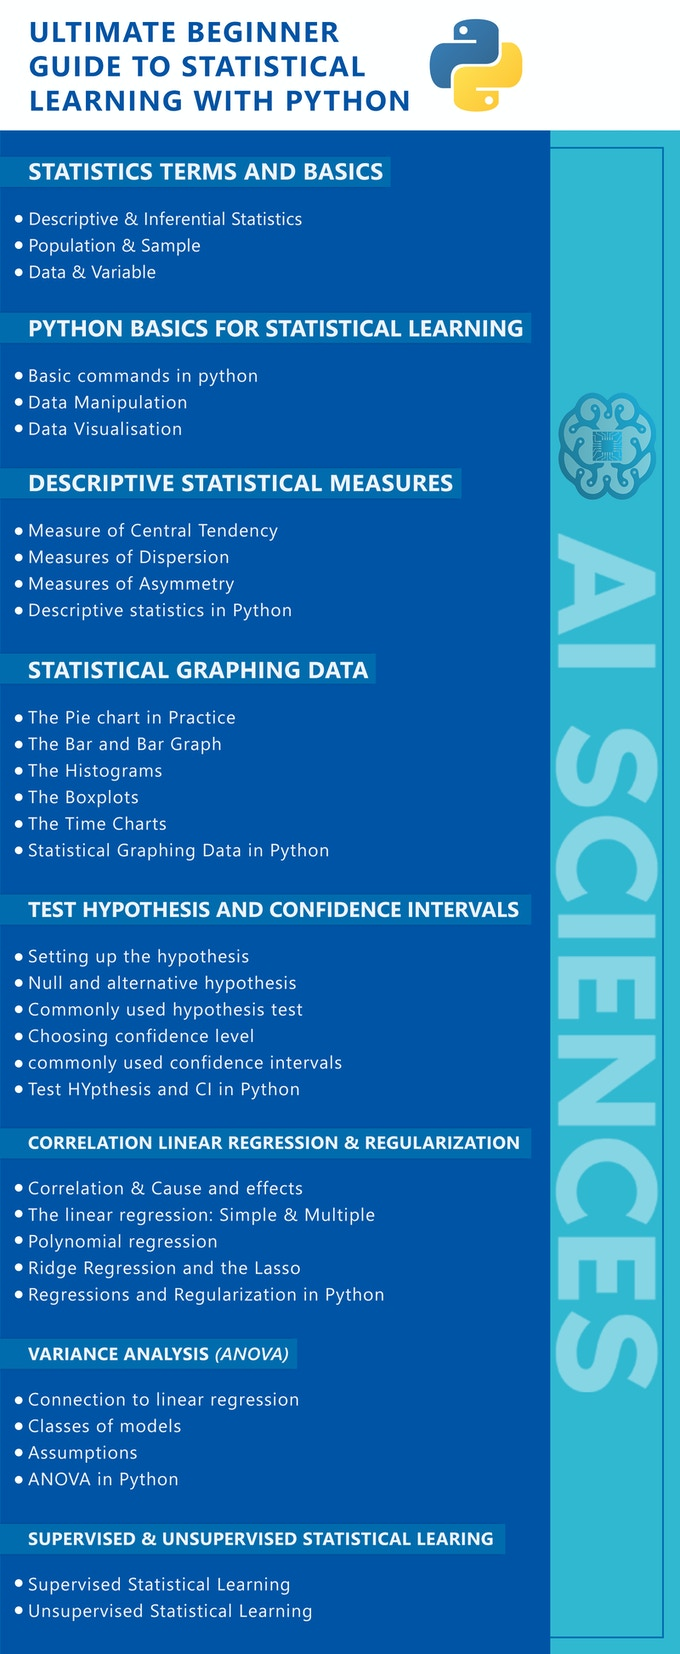 Data Science and AI with Python Courses by AI Sciences